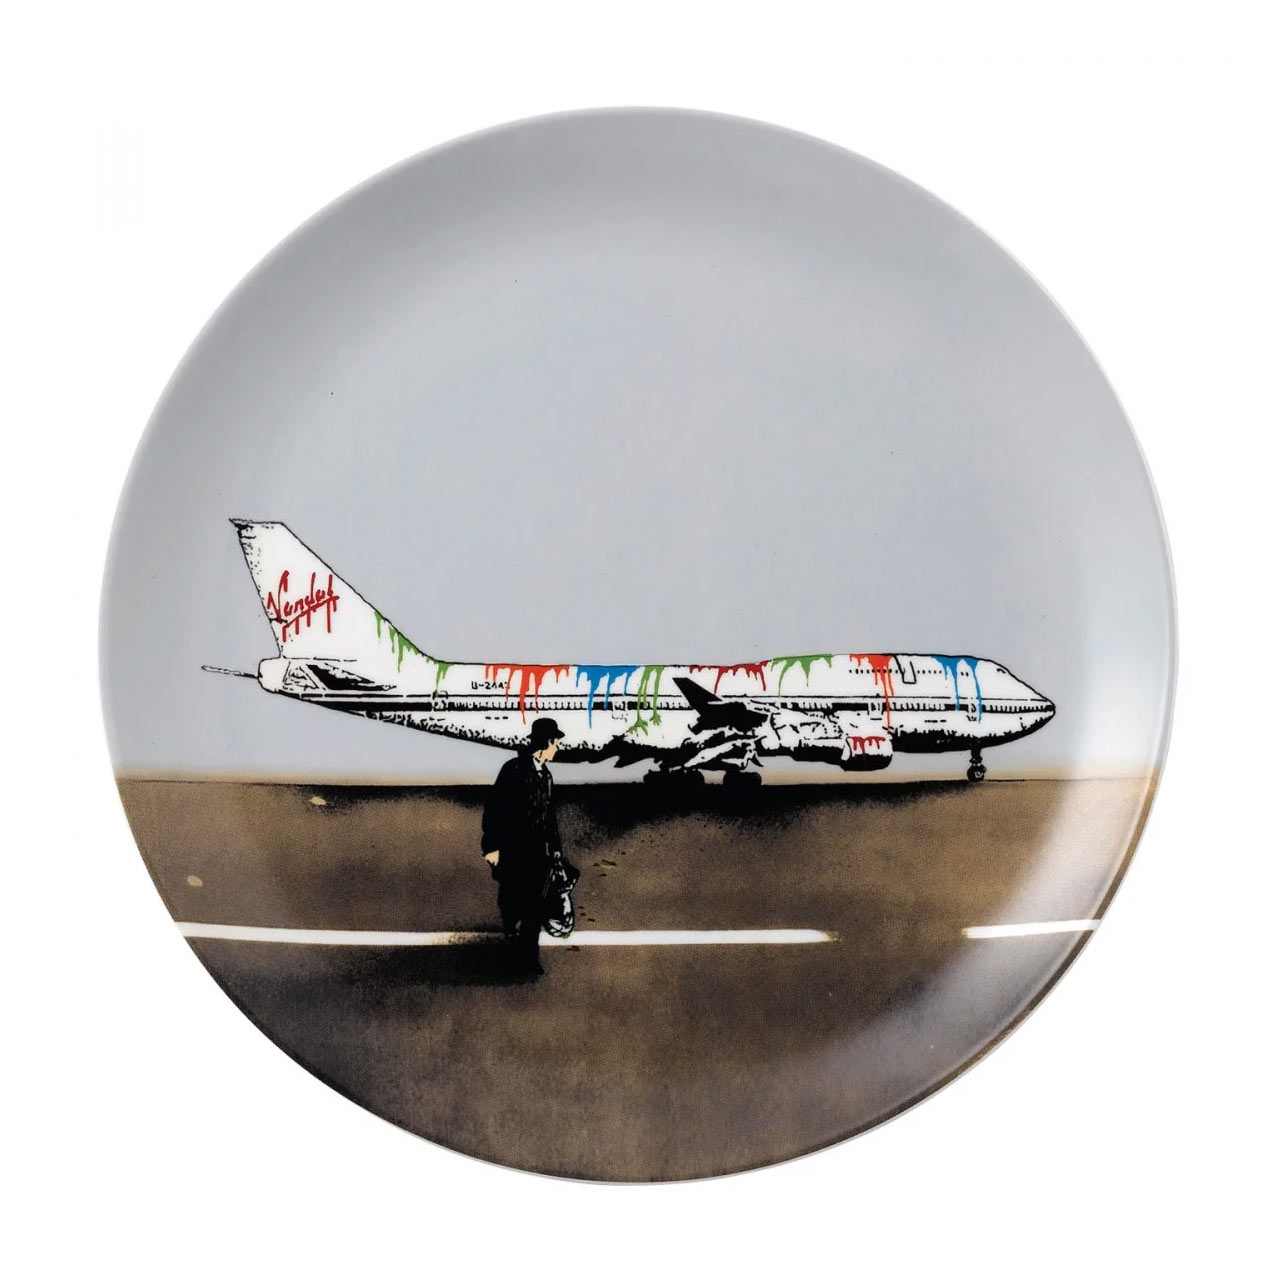 Royal Doulton, Street Art Vandal Airways